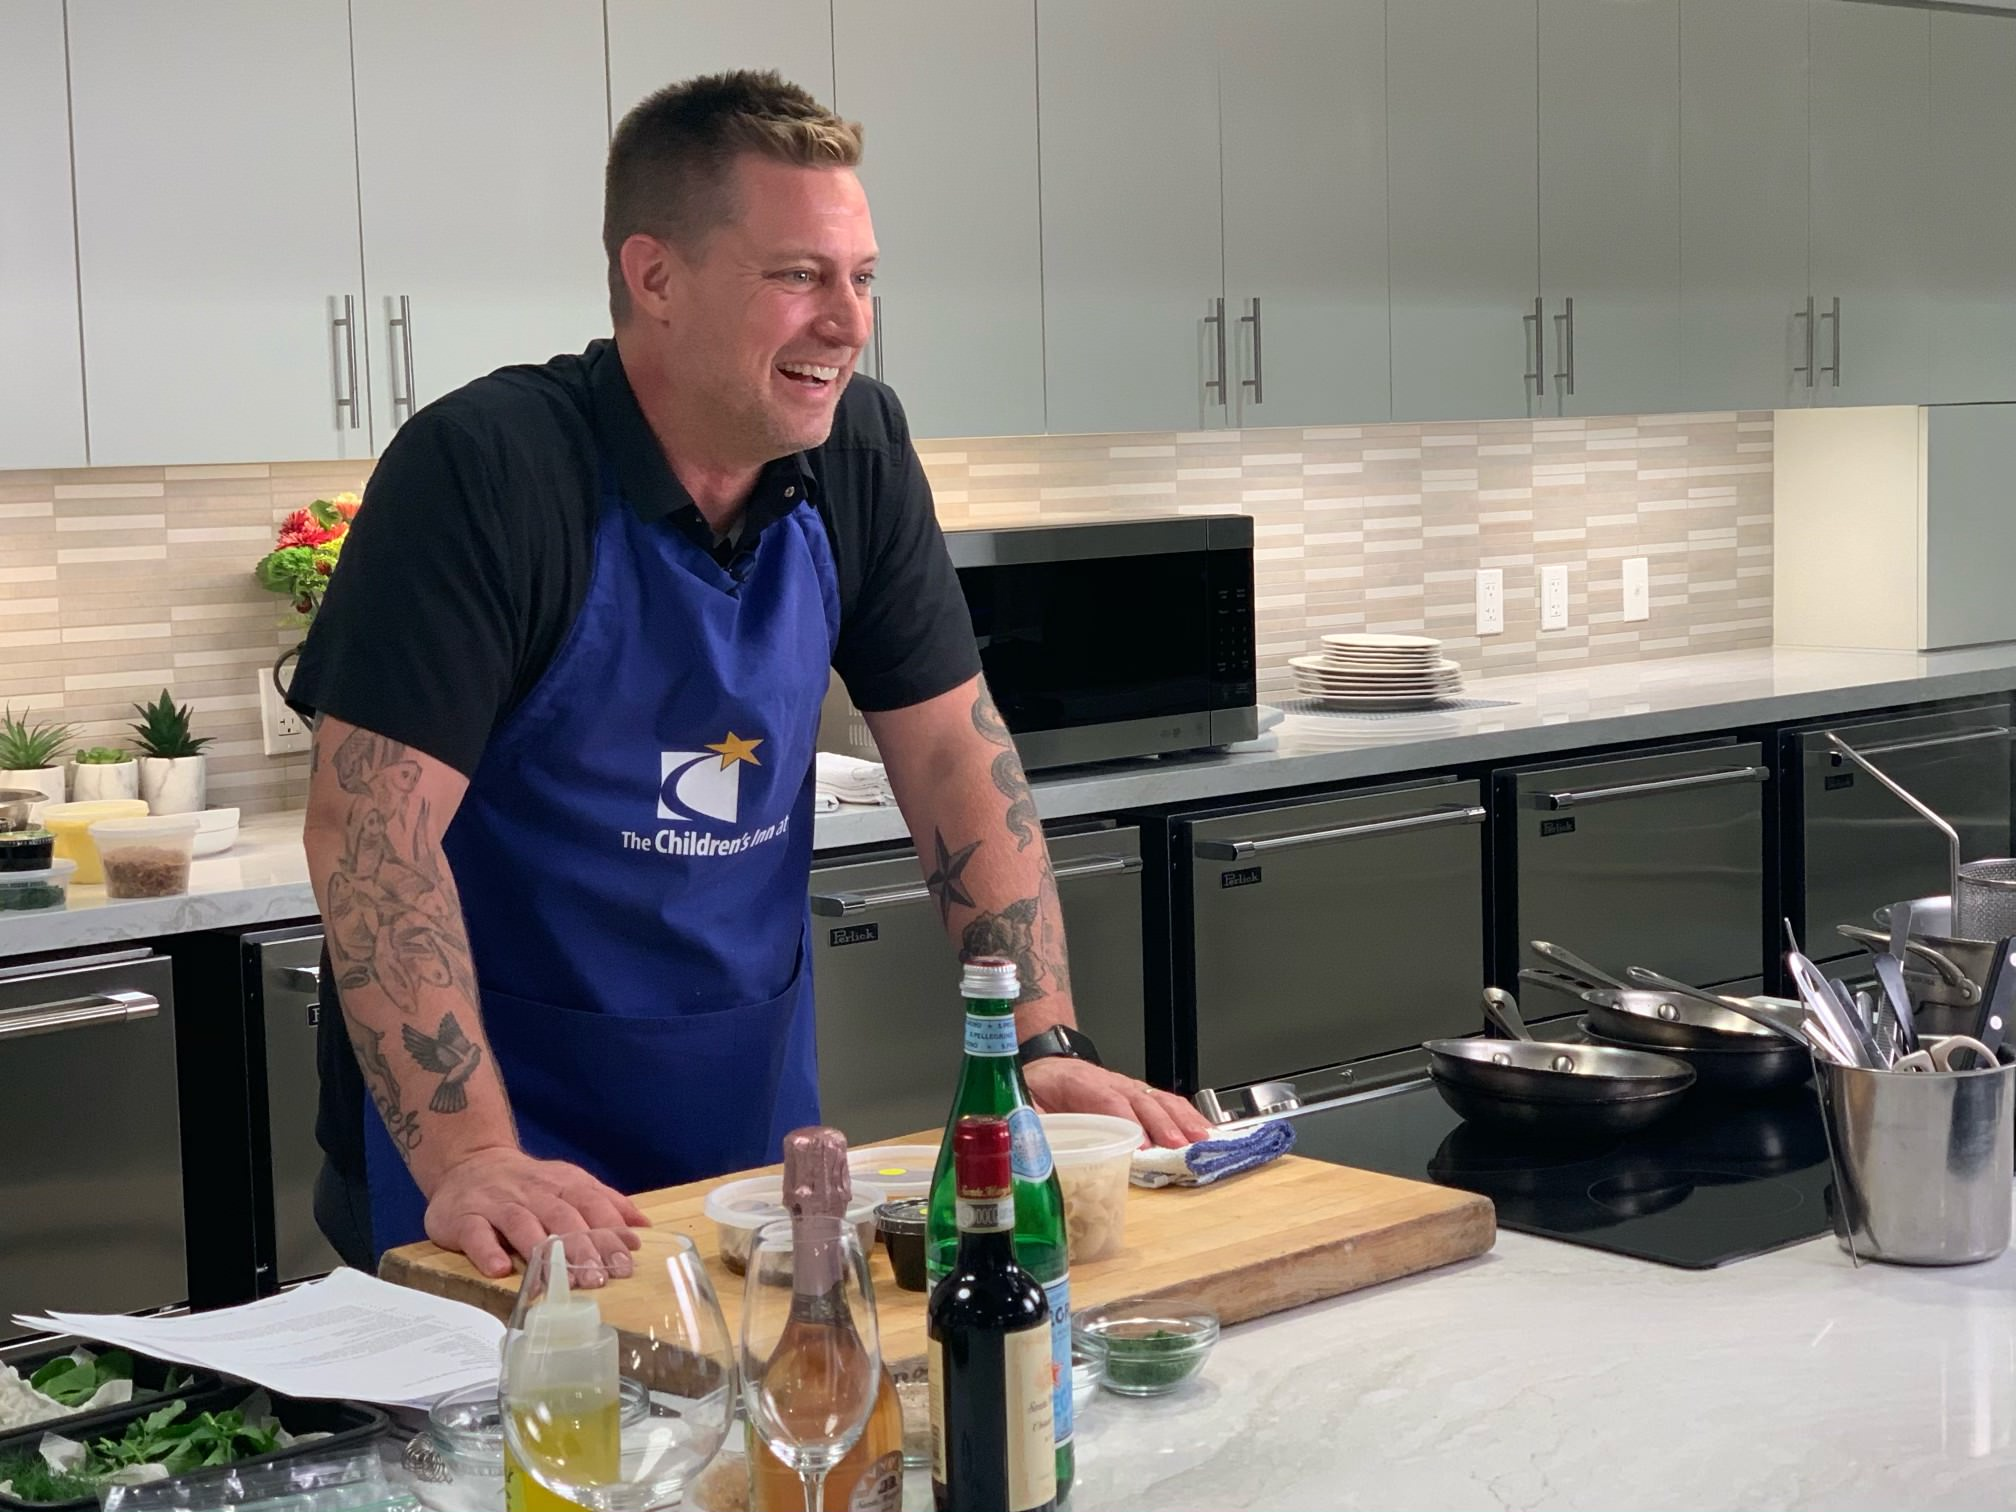 James Beard celebrity chef at the Children